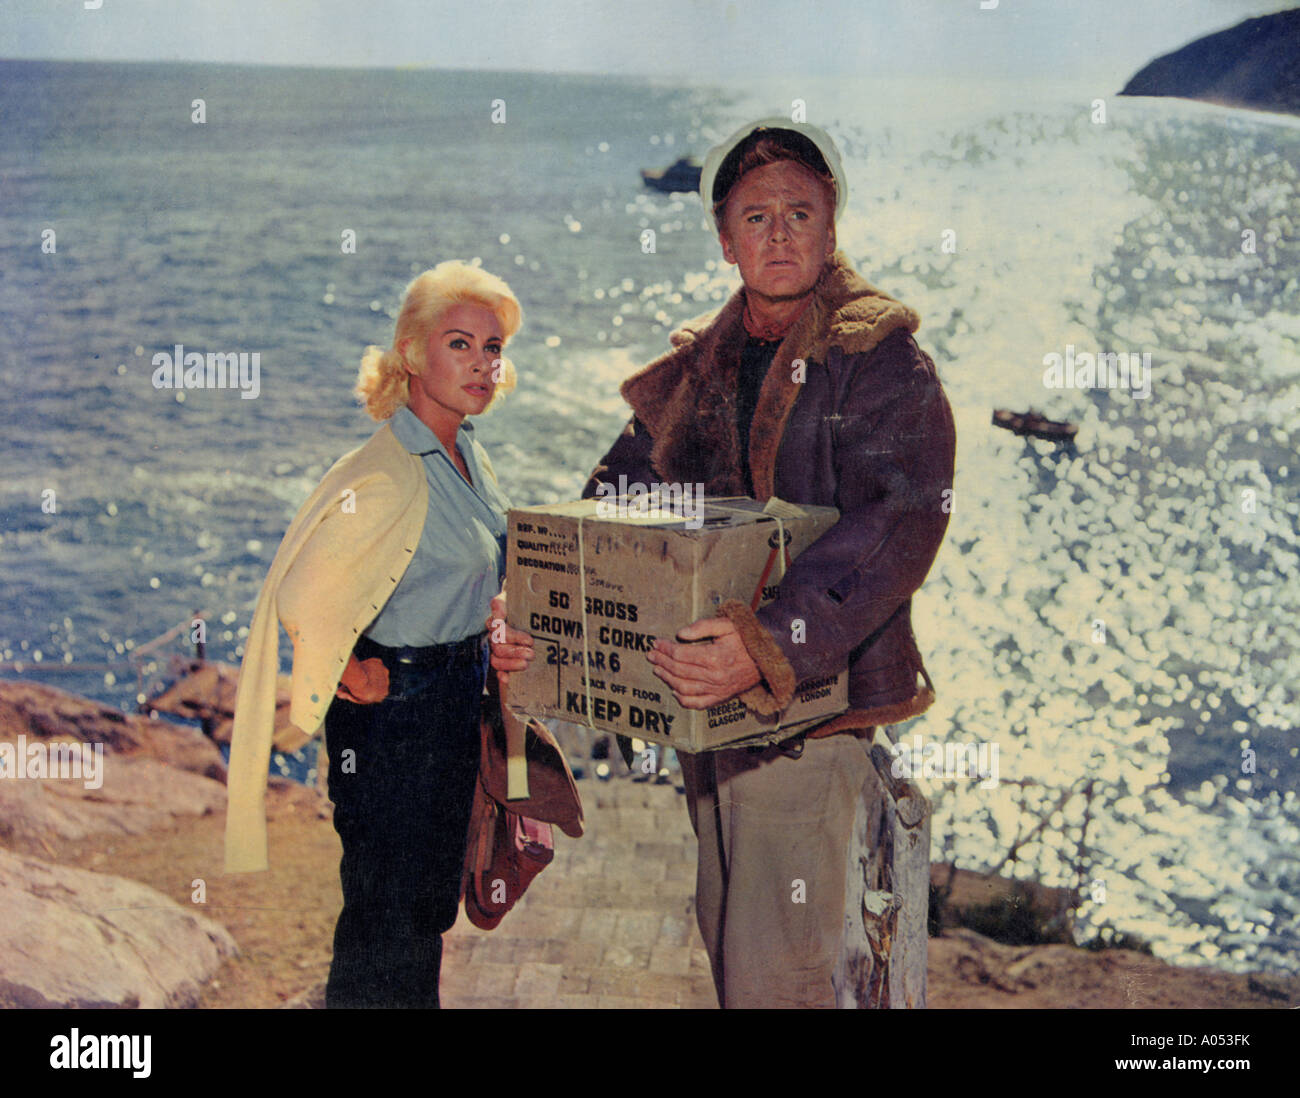 ACTION OF THE TIGER 1957 MGM film with Van Johnson and Martine Carol - Stock Image